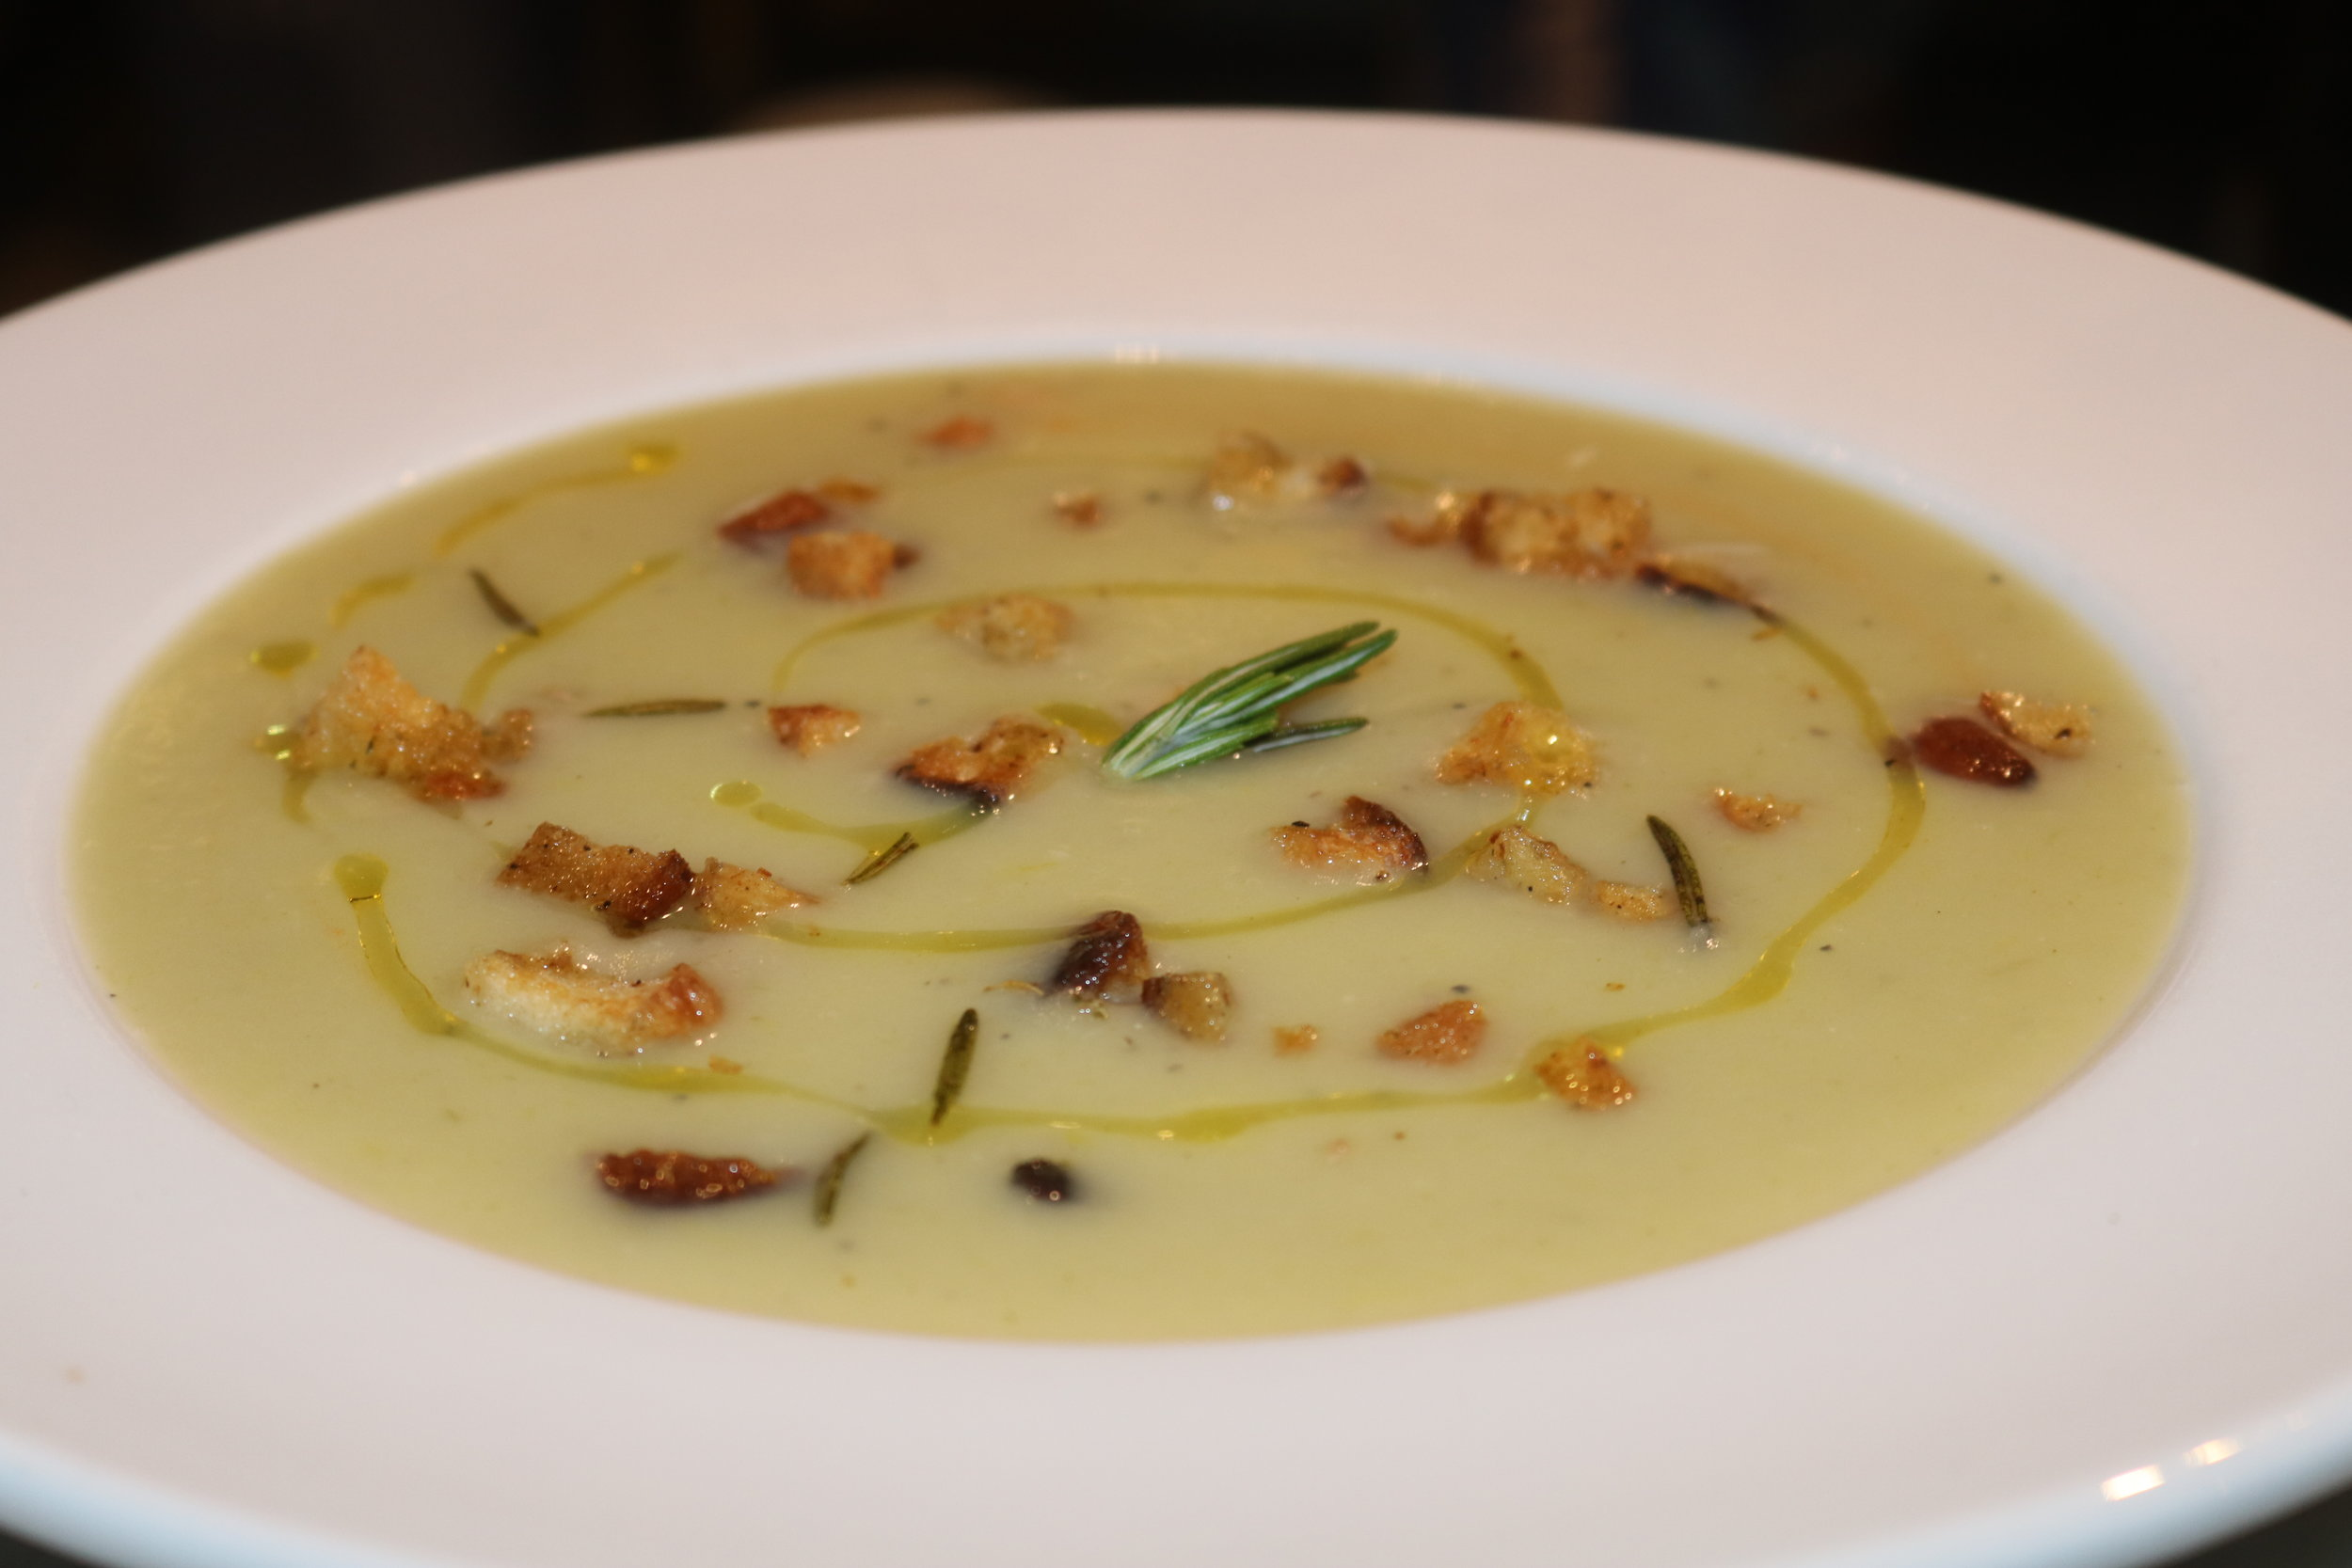 Warm up with our leek and potato soup. Each portion will be served with homemade croutons and a drizzle of olive oil.